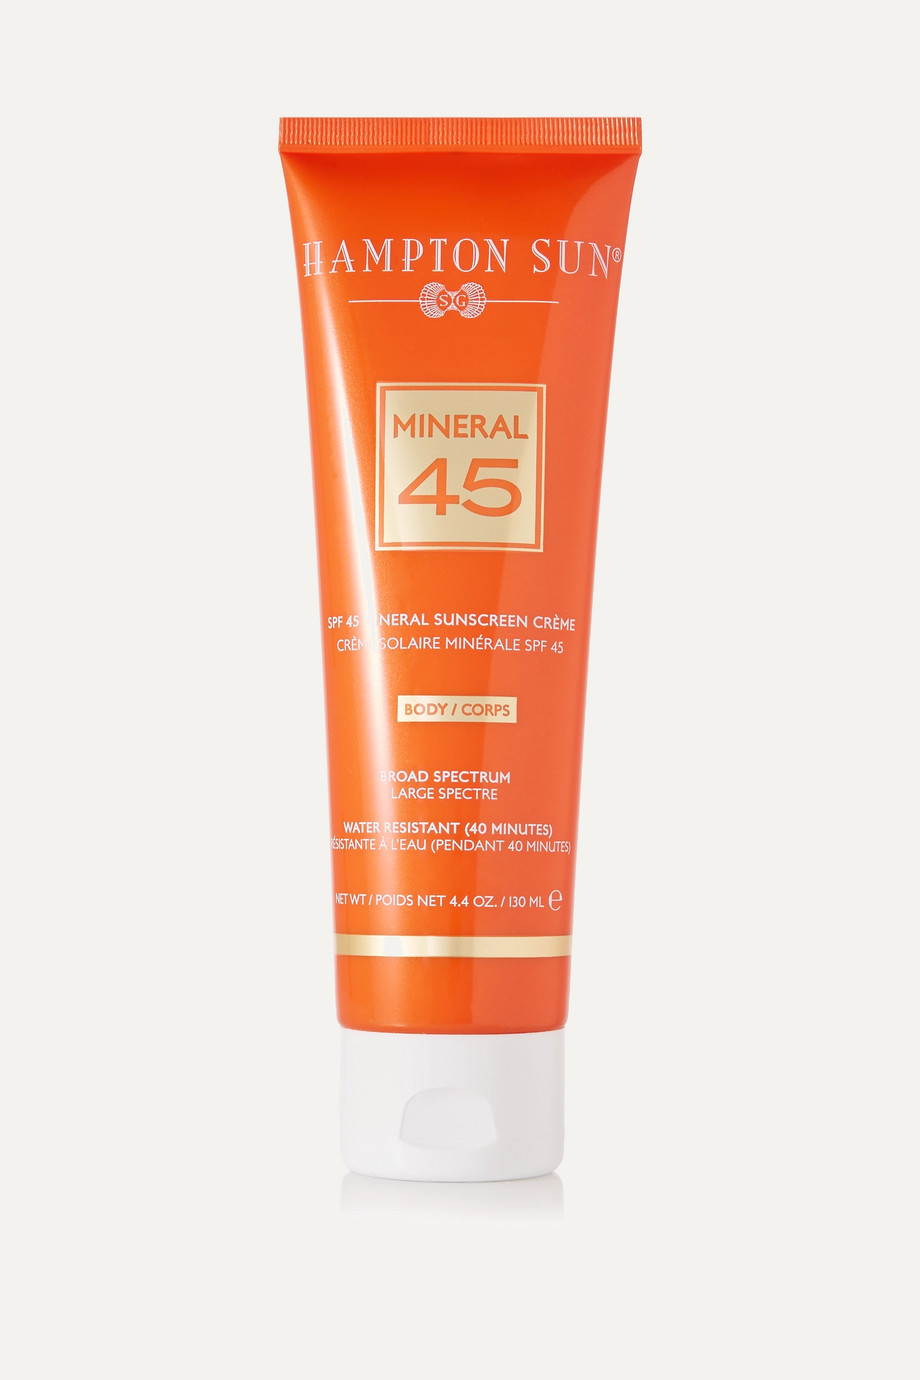 Hampton Sun SPF45 Mineral Crème for Body, 130ml